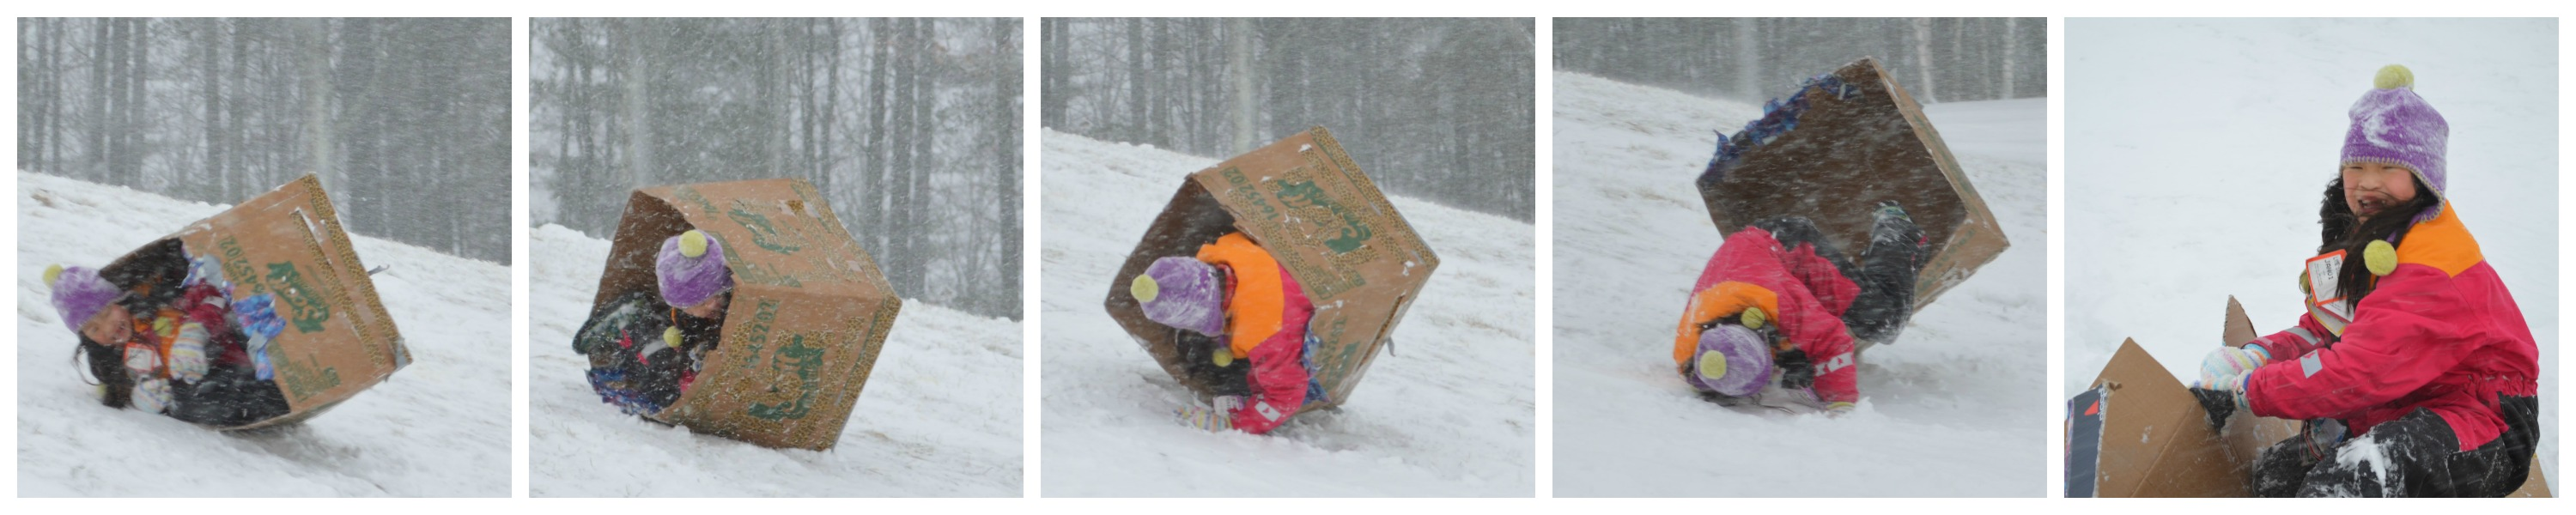 Rolling Rory in snow box